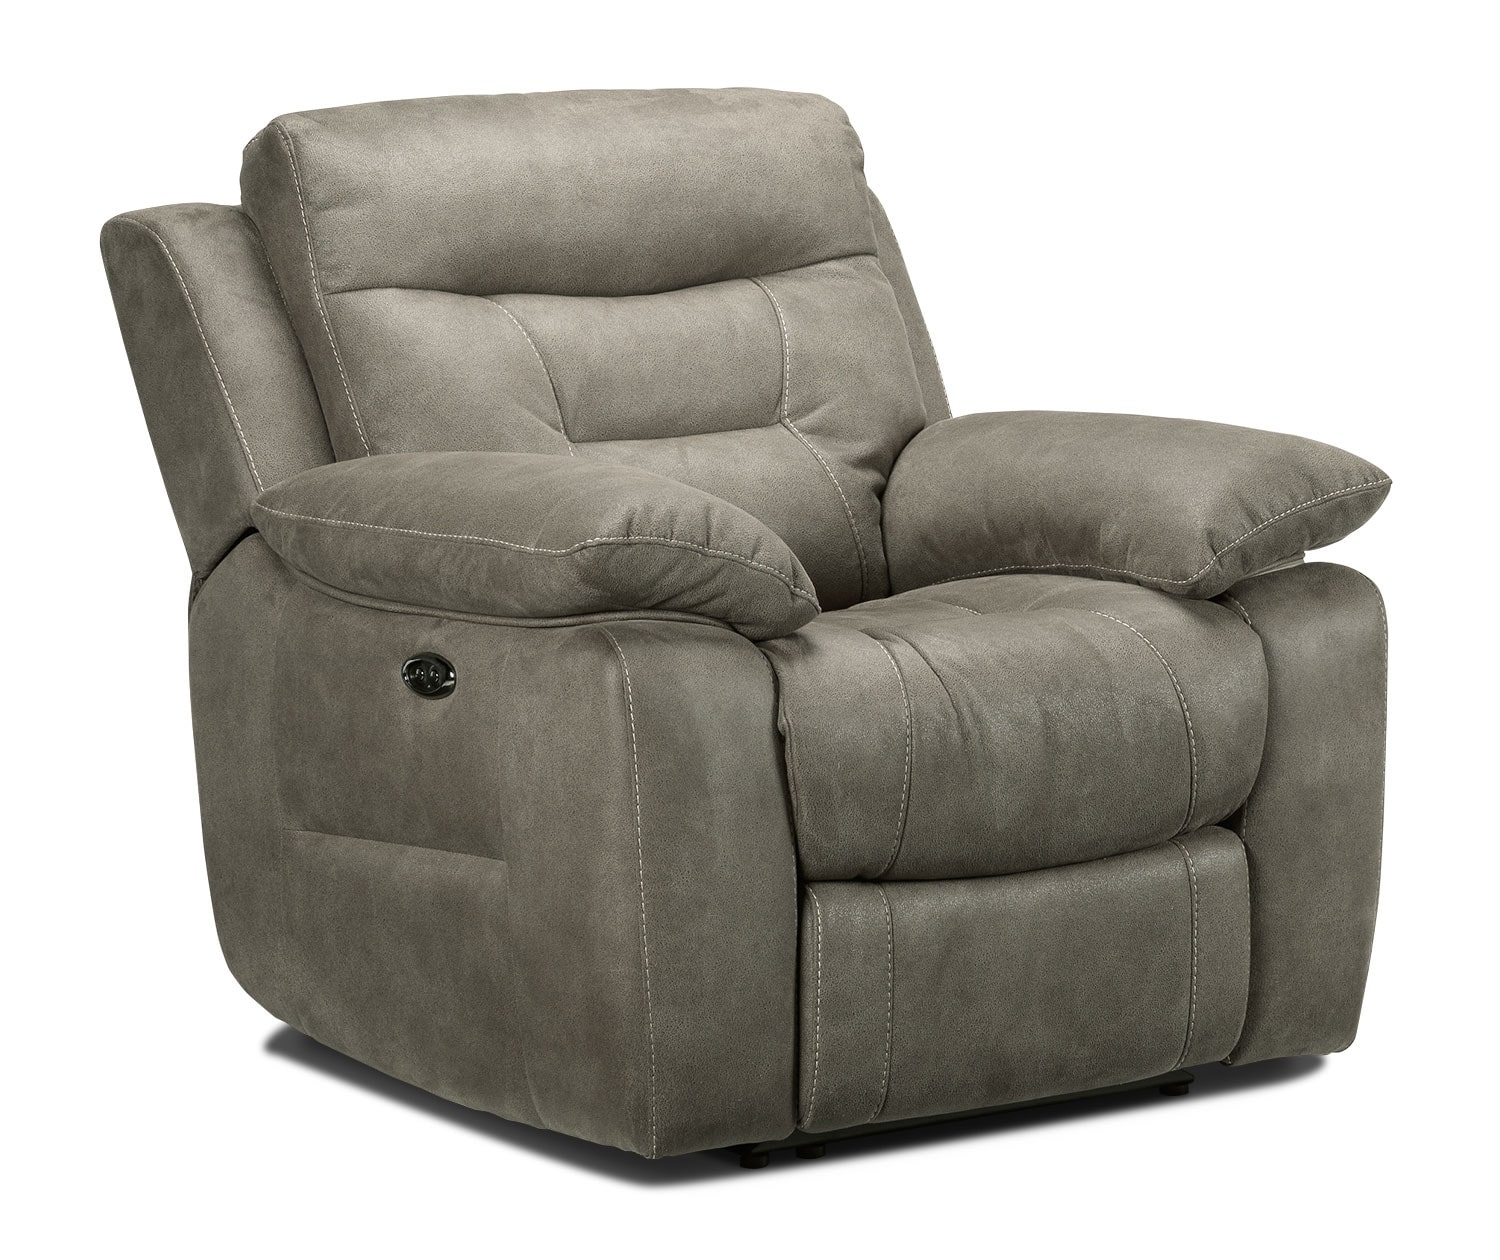 [Collins Power Reclining Chair - Silver]